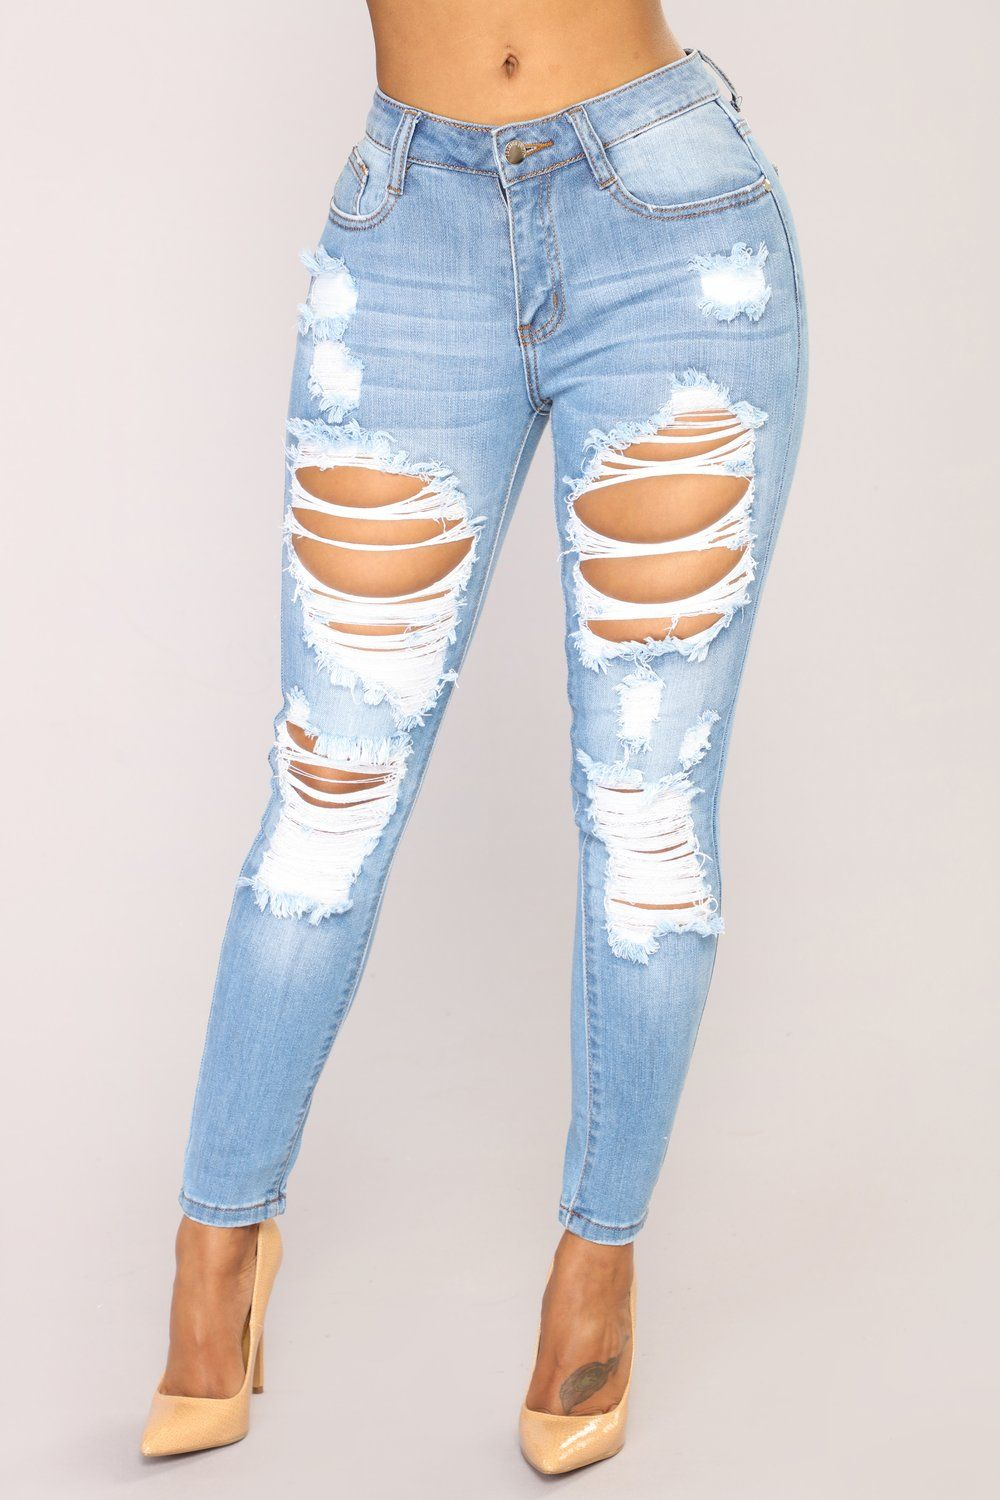 Give Good Love Skinny Jeans Light Blue Wash Light Ripped Jeans Light Blue Ripped Jeans Best Jeans For Women,Low Budget Backyard Desert Landscaping Ideas On A Budget